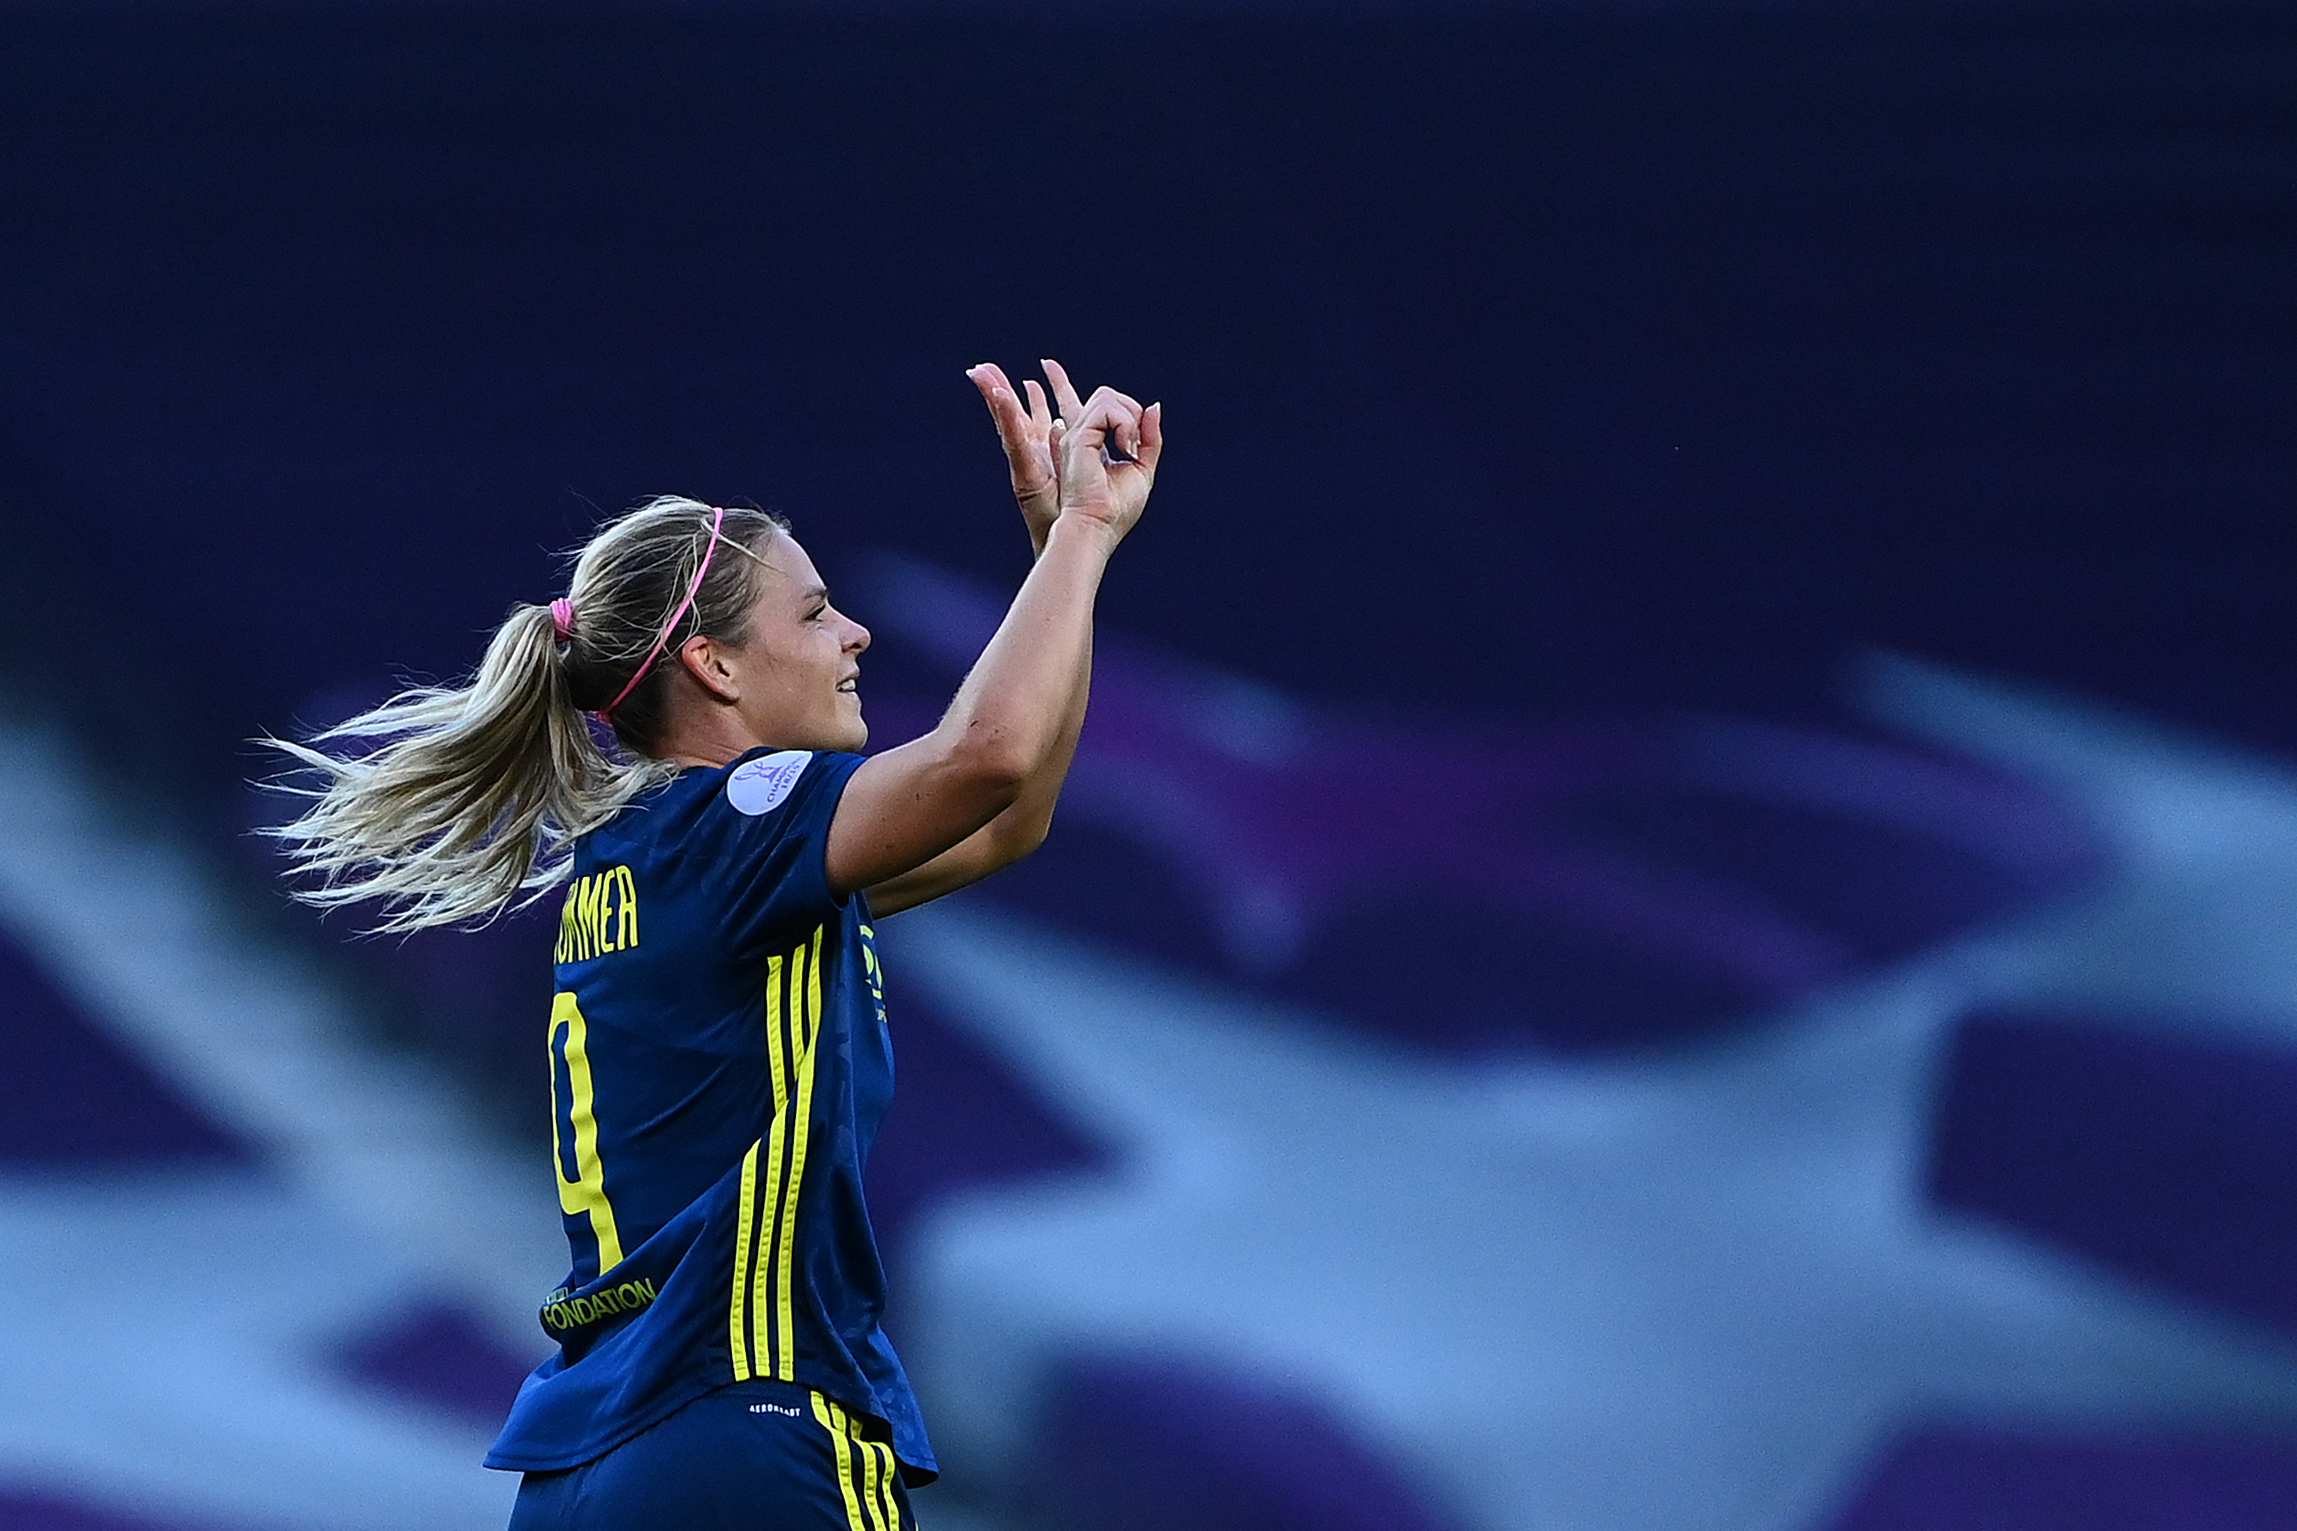 Lyon's French forward Eugenie Le Sommer celebrates after scoring the opening goal during the UEFA Women's Champions League final football match between VfL Wolfsburg and Lyon at the Anoeta stadium in San Sebastian on August 30, 2020. (Photo by GABRIEL BOUYS / POOL / AFP) (Photo by GABRIEL BOUYS/POOL/AFP via Getty Images)